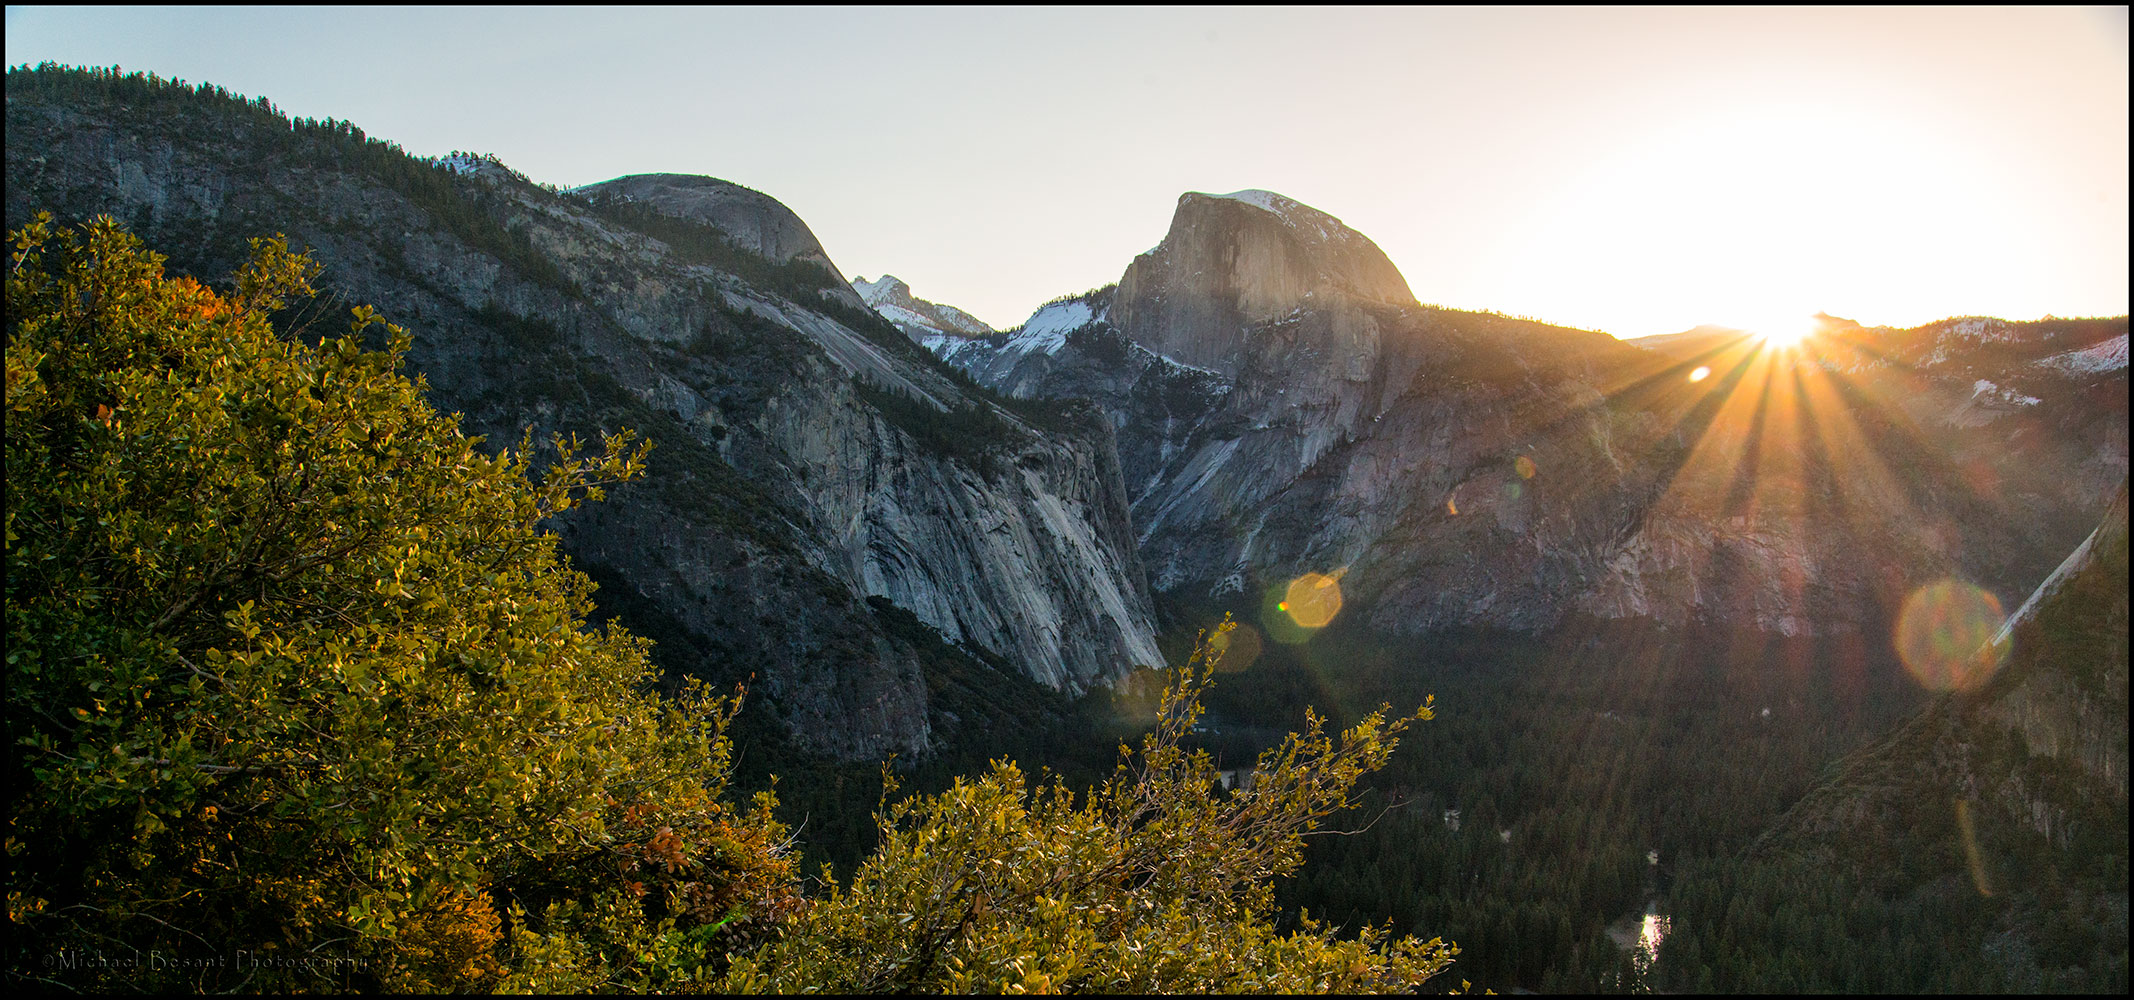 Microsoft Wallpaper Fall Yosemite Michael Besant Photography